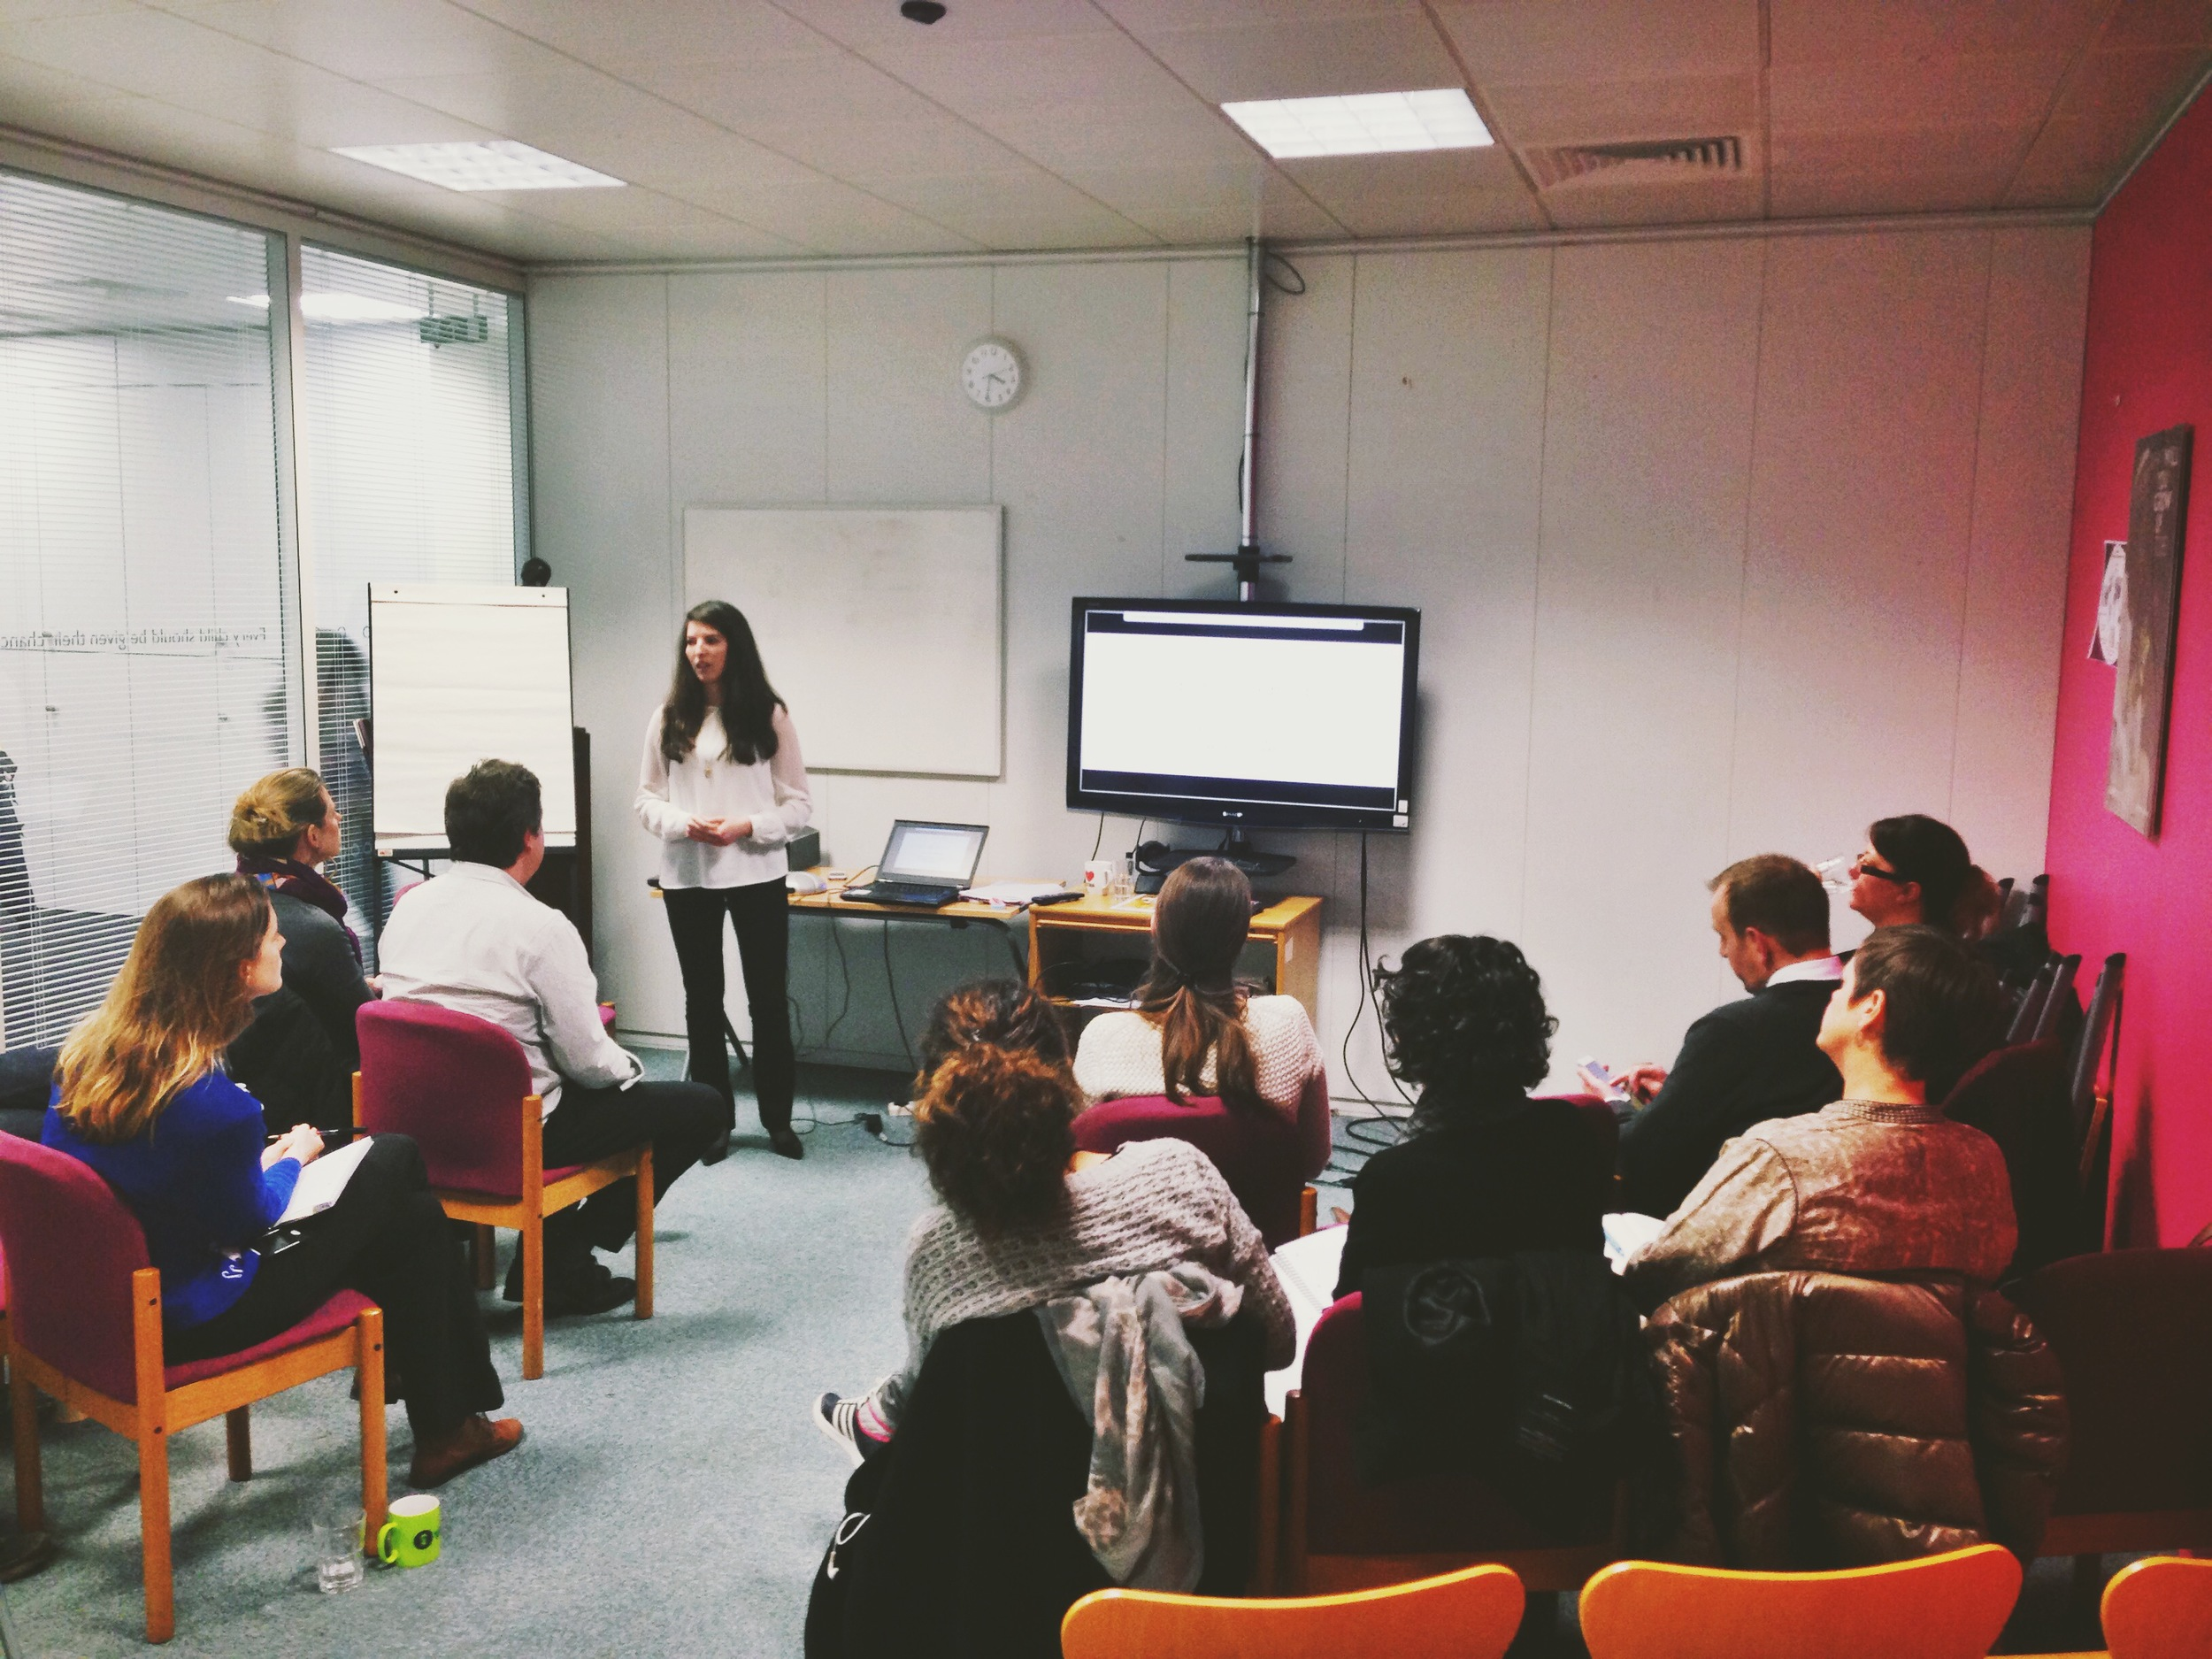 Happy Friday! Today our founder, Lauren, gave an intimate talk at  Save the Children UK  about our work on a panel about Technology & Development. Save is exploring how partnering with innovative technology organizations can accelerate their progress toward giving every child access to health, safety, and education. Photo published: December 12, 2014.